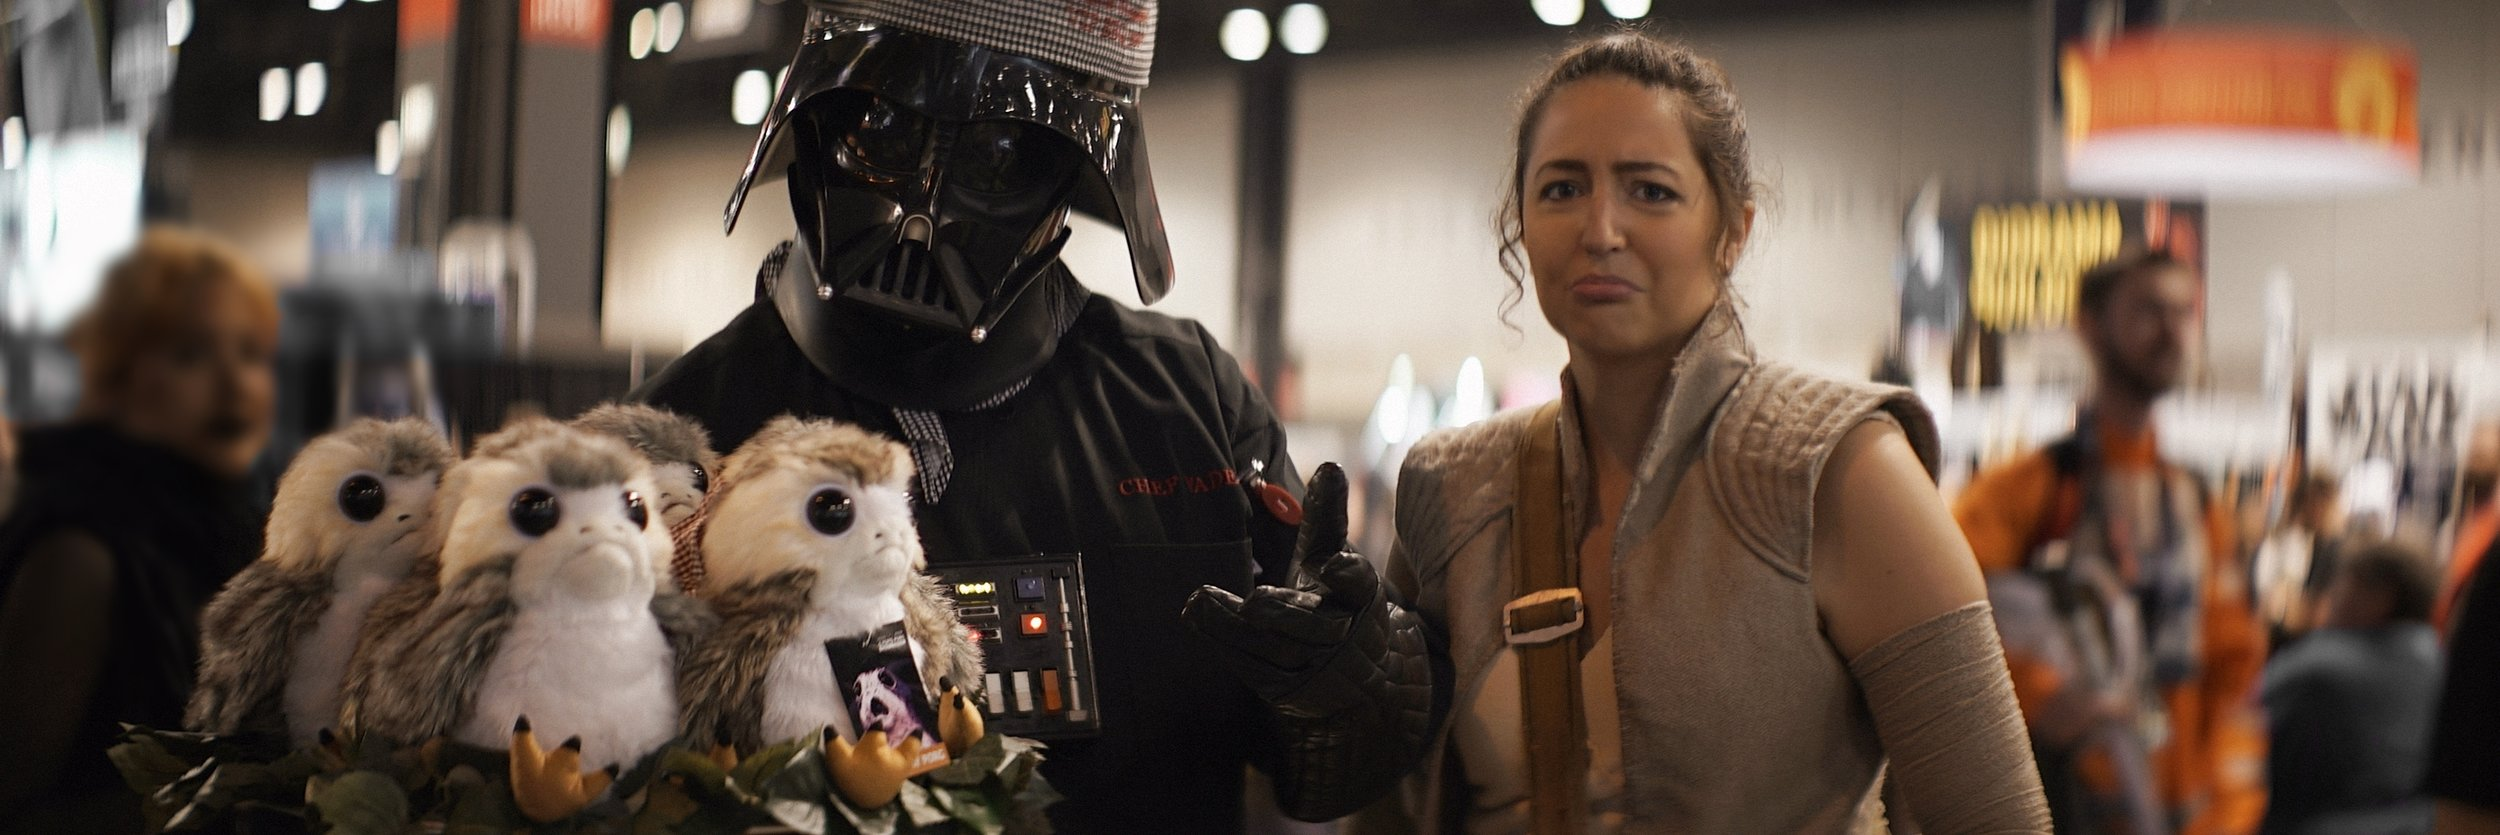 Lomo 75mm Anamorphic Lens | Star Wars Celebration Chicago - SWCC | Chef Vader with a platter of Porgs for dinner. - Photo by: Keith Nickoson